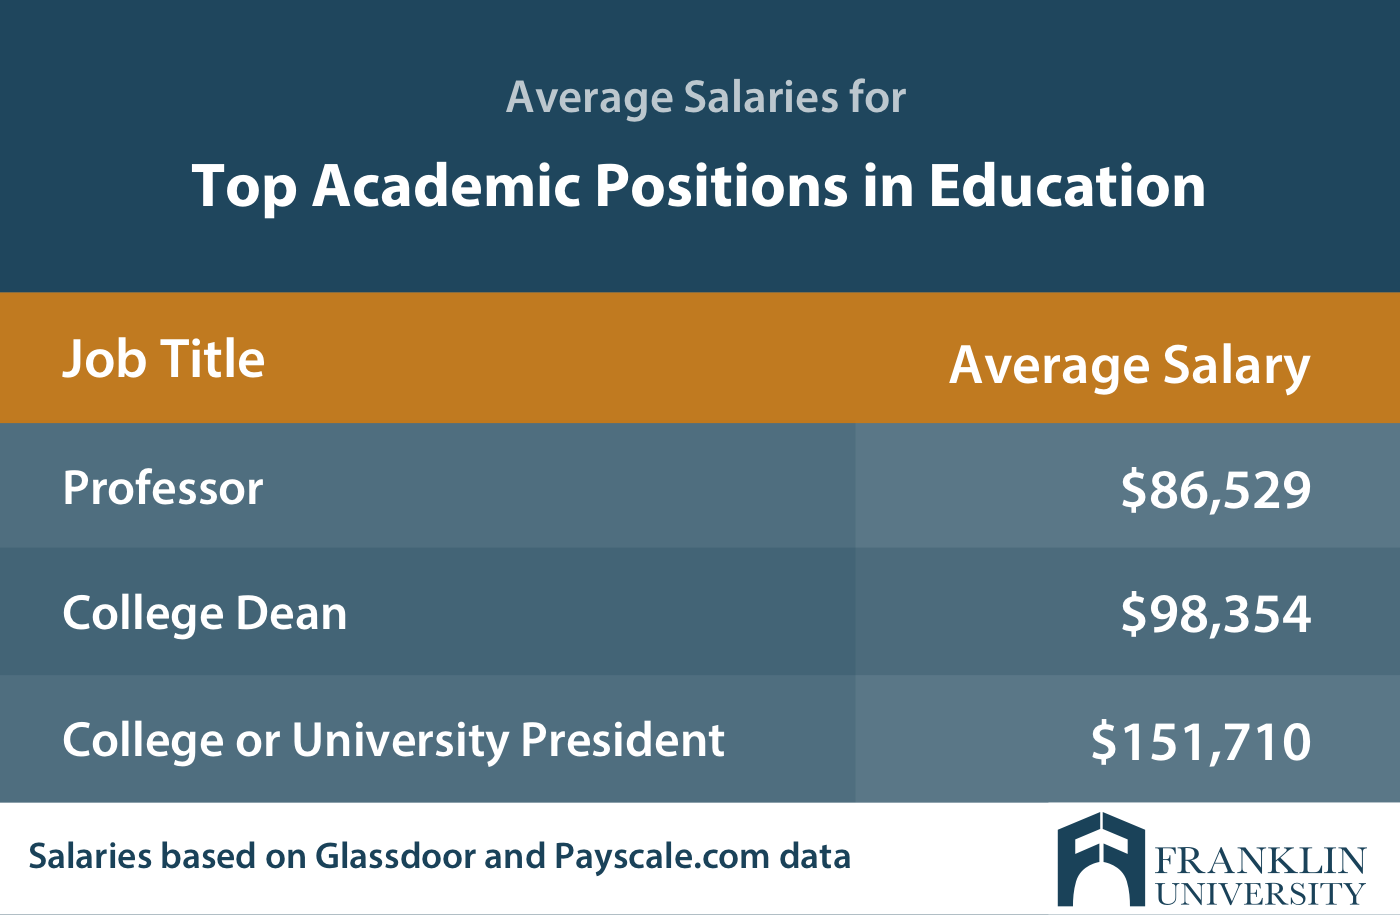 graphic describing the average salaries for top academic positions in education